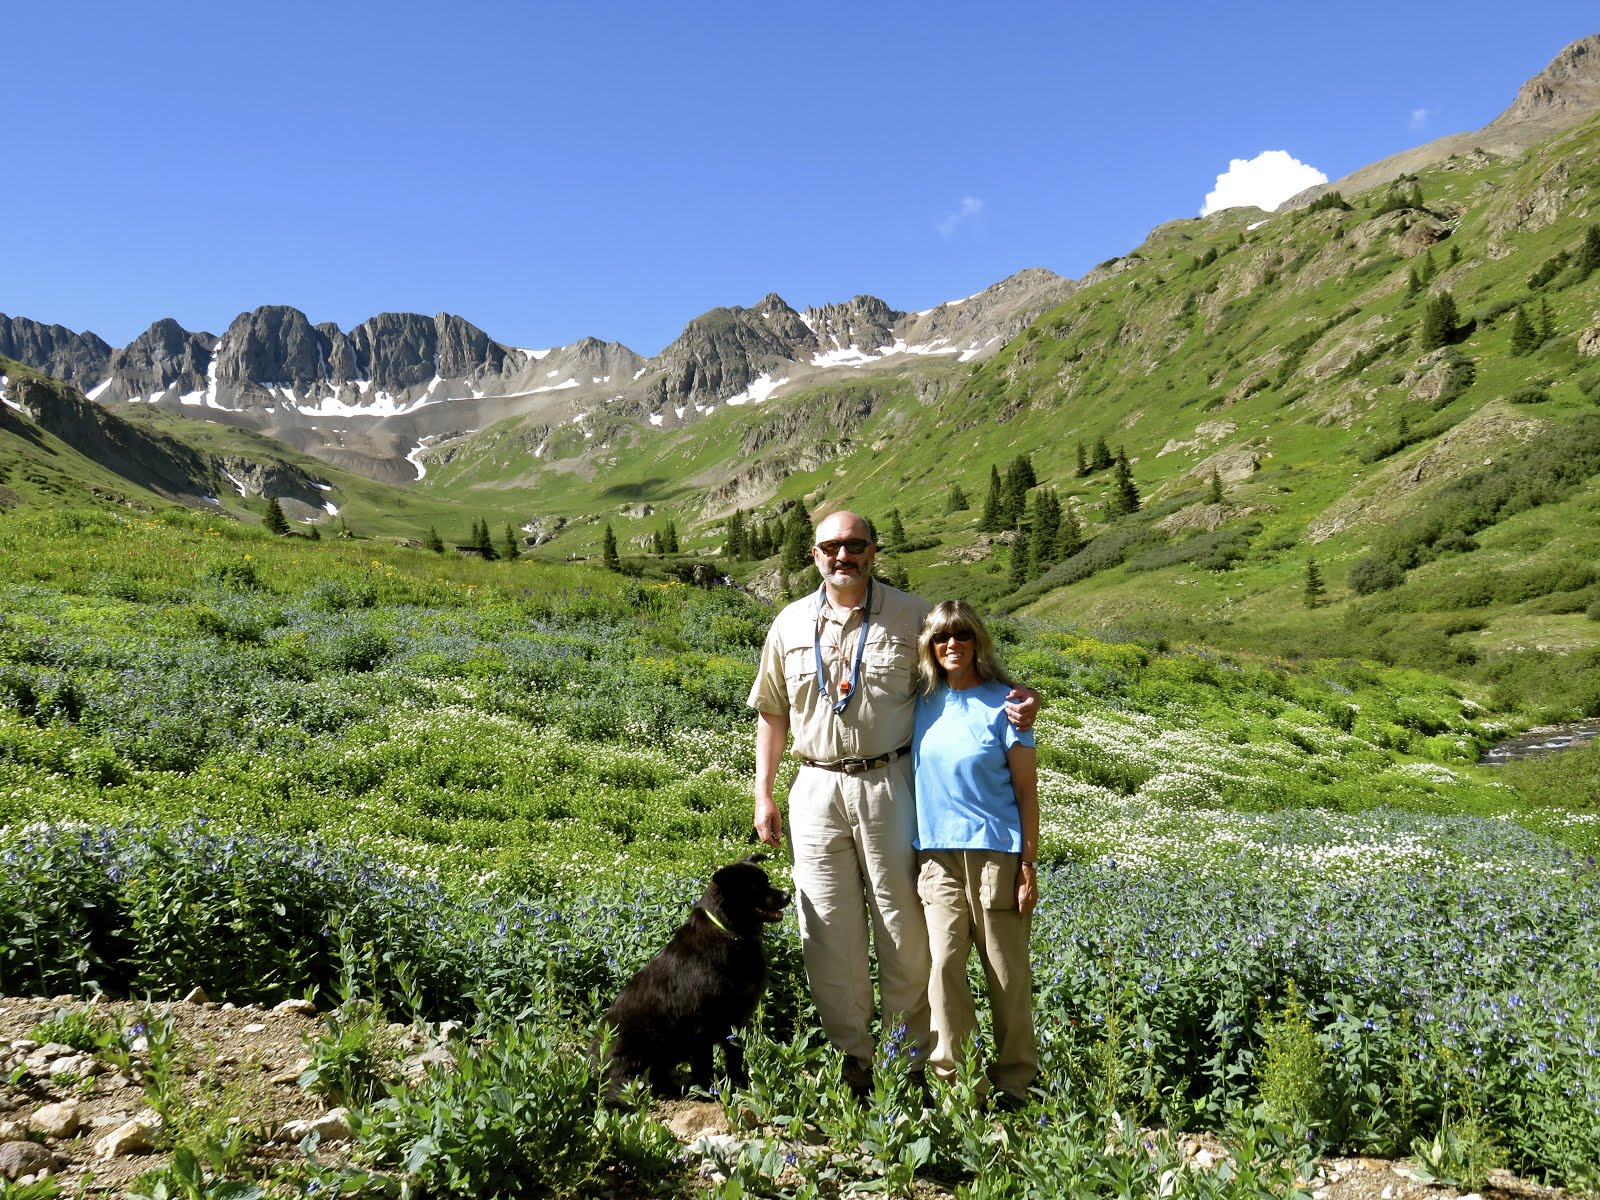 American Basin in Colorado's San Juan Mountains